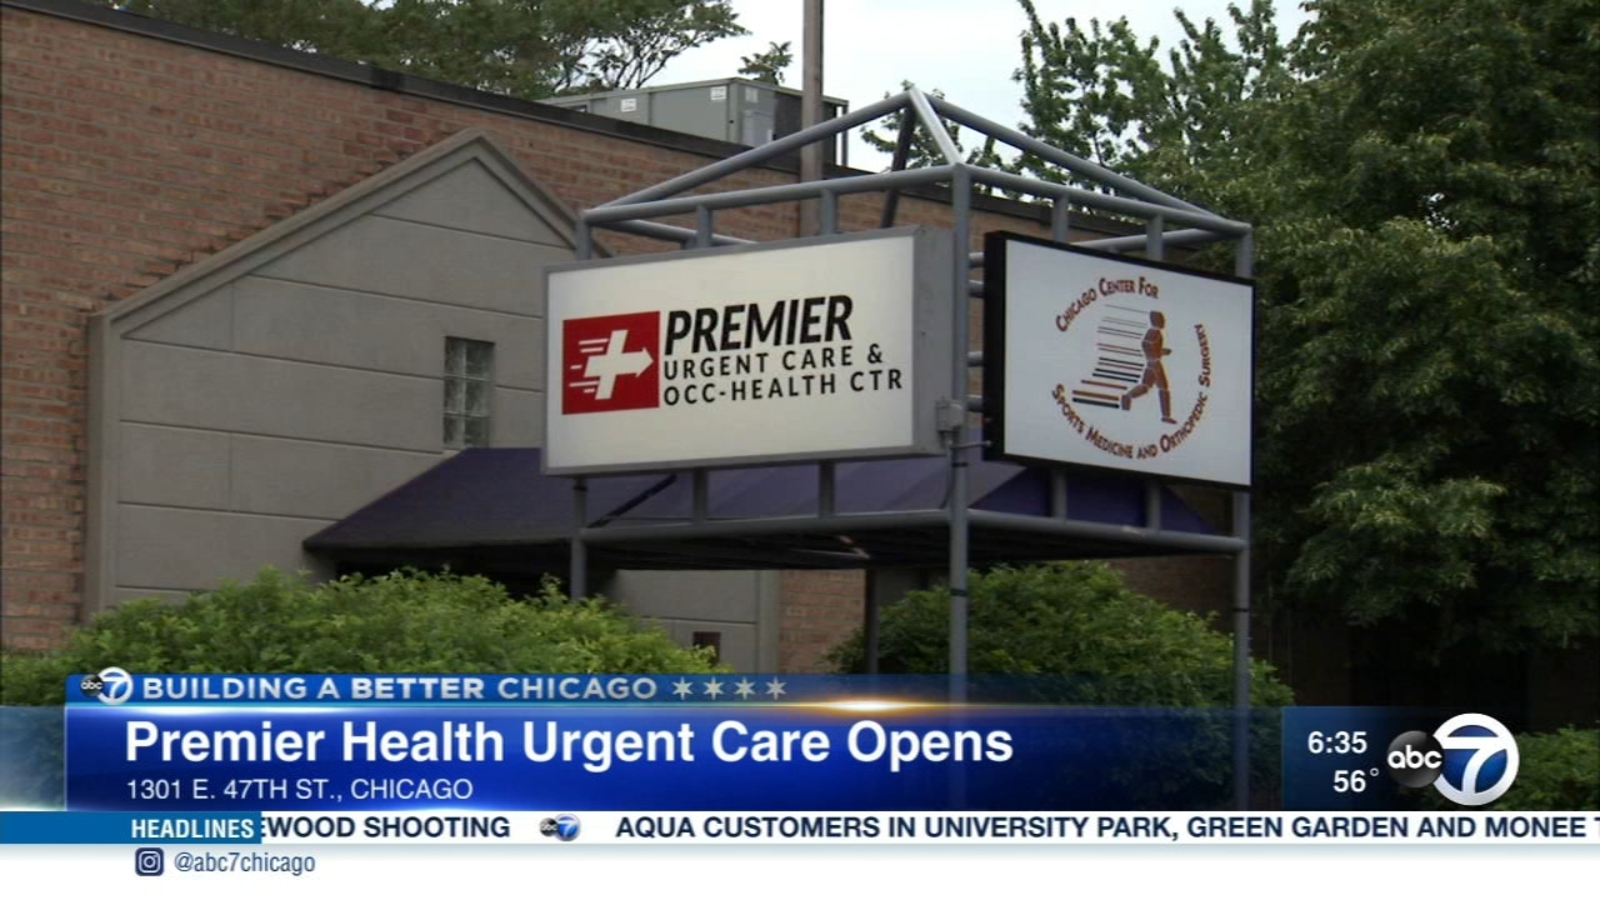 Premier Health Urgent Care becomes first black-owned urgent care facility on Chicago's South Side